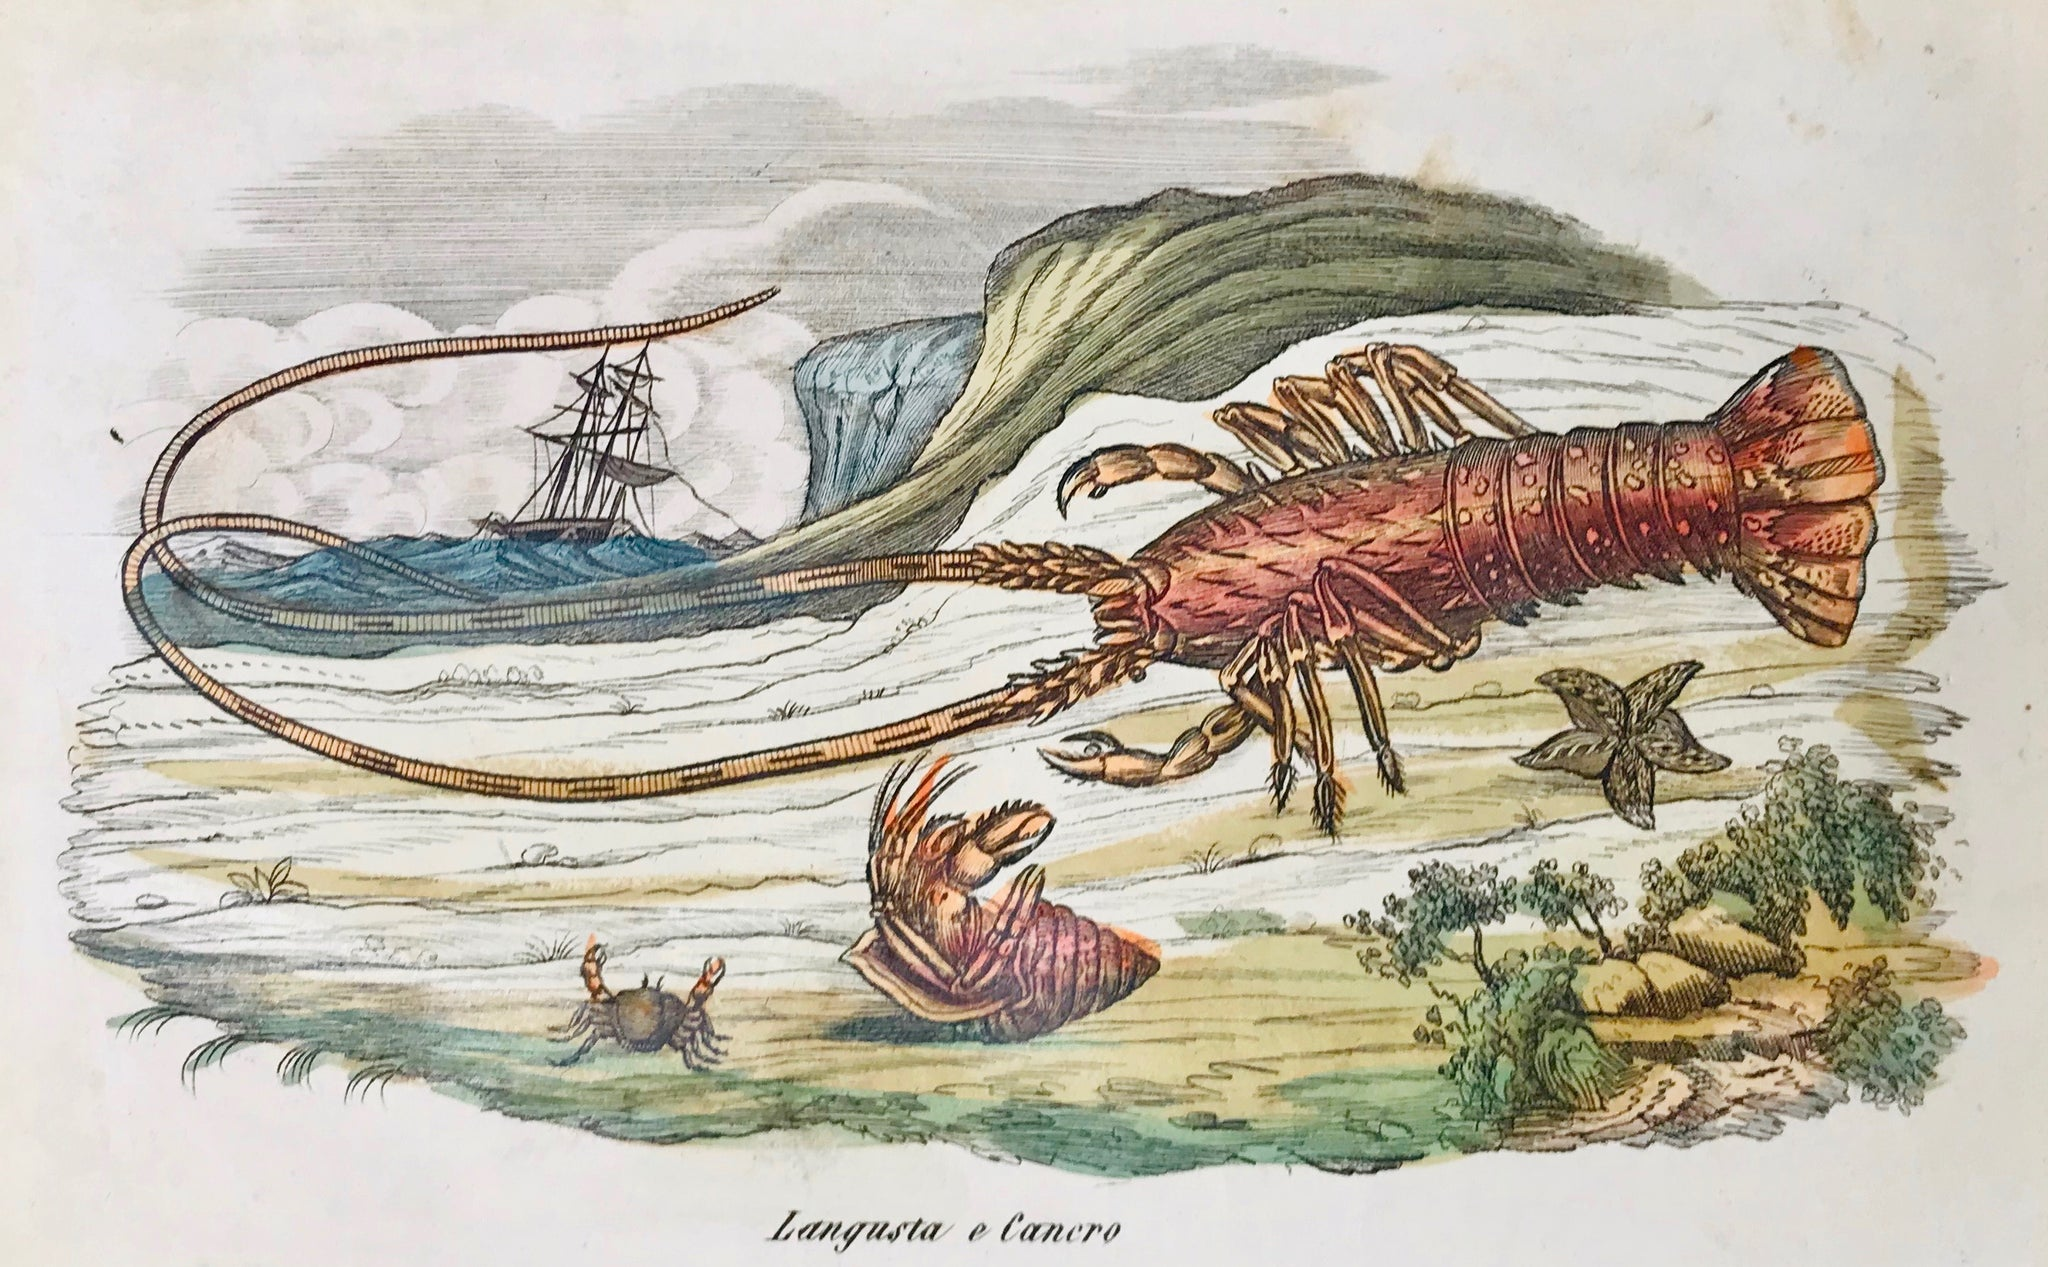 """Langusta e cancero"" - Crawfish and Crabs.  Originally hand-colored etching by an anonymous artist.  Italian, ca. 1860. A few signs of age and use..  12 x 19 cm (ca. 4.7 x 7.5"")"